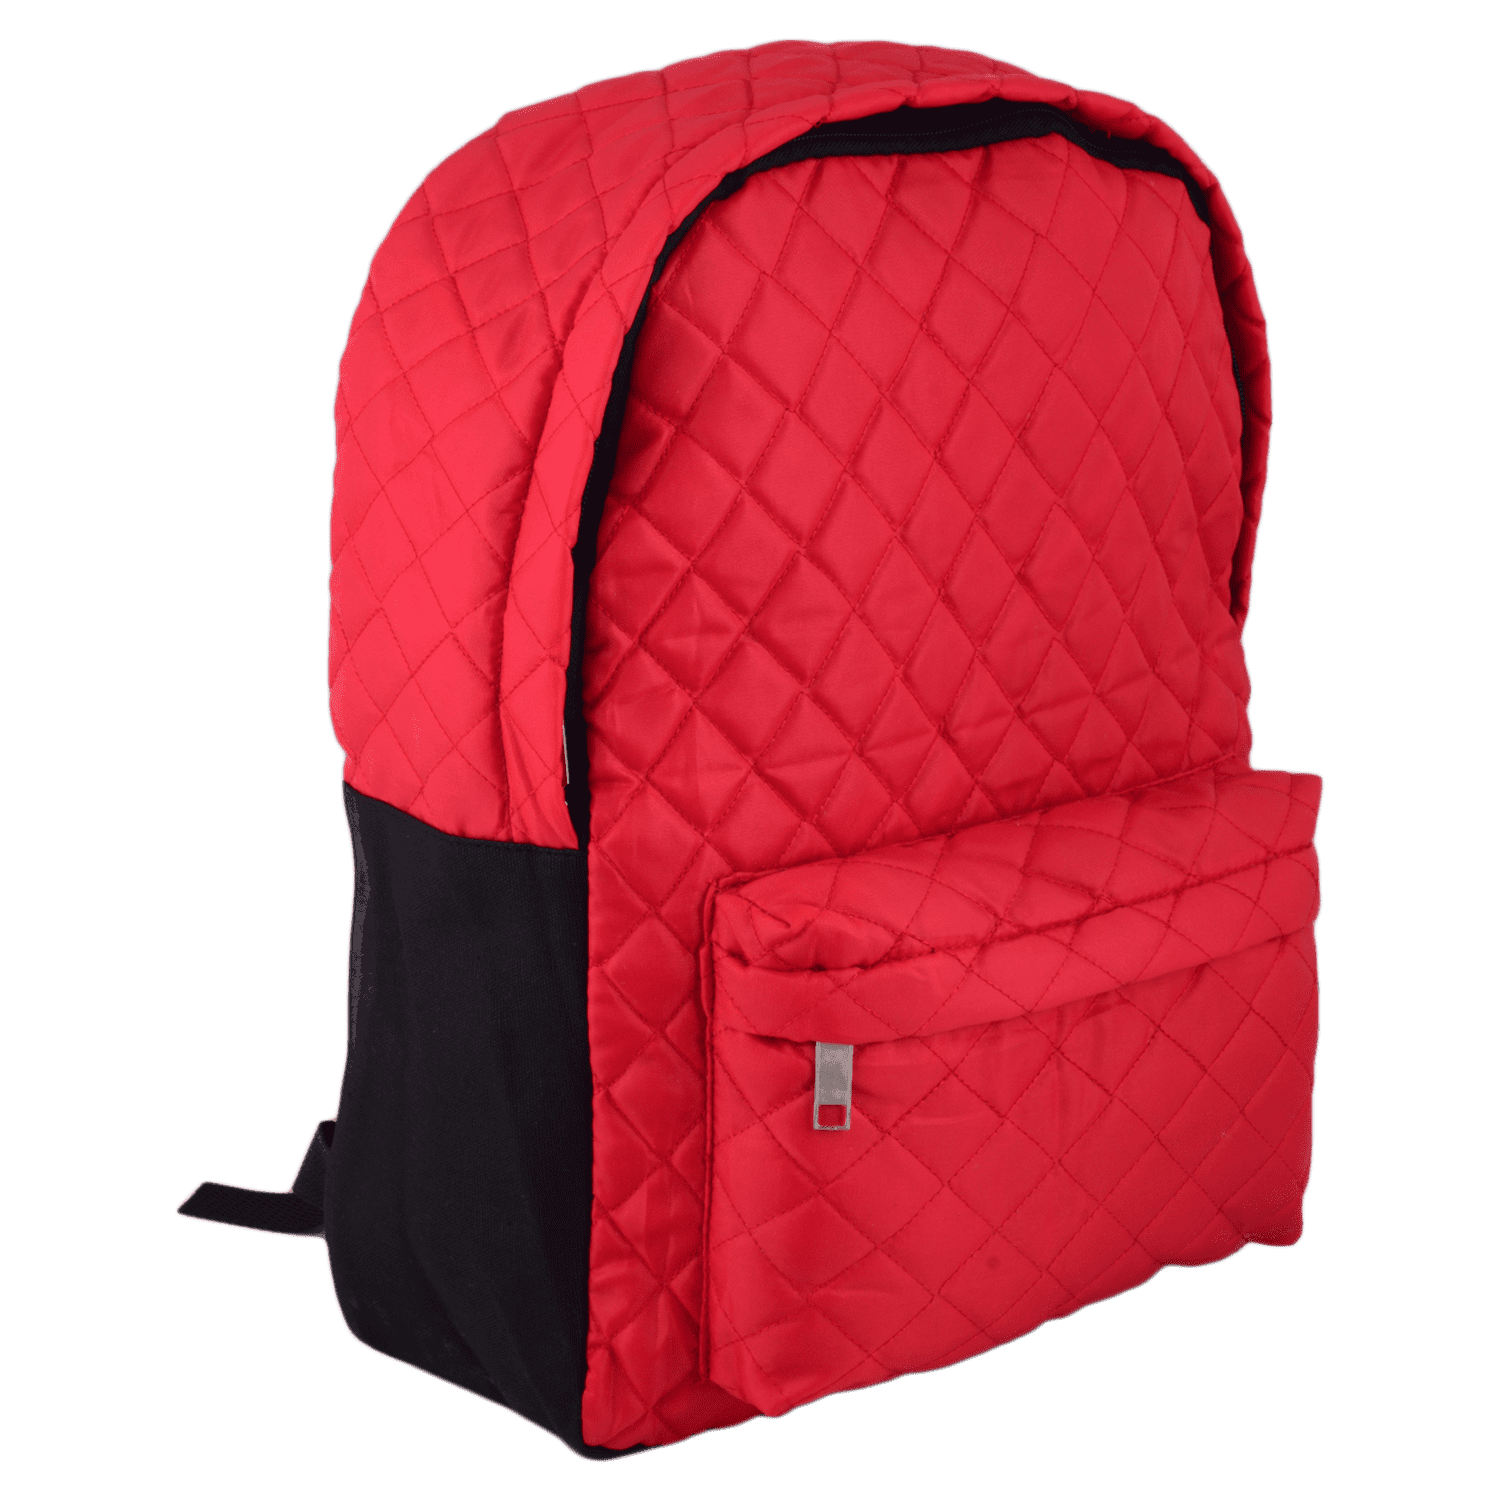 quilted-backpack-bpcl0011red